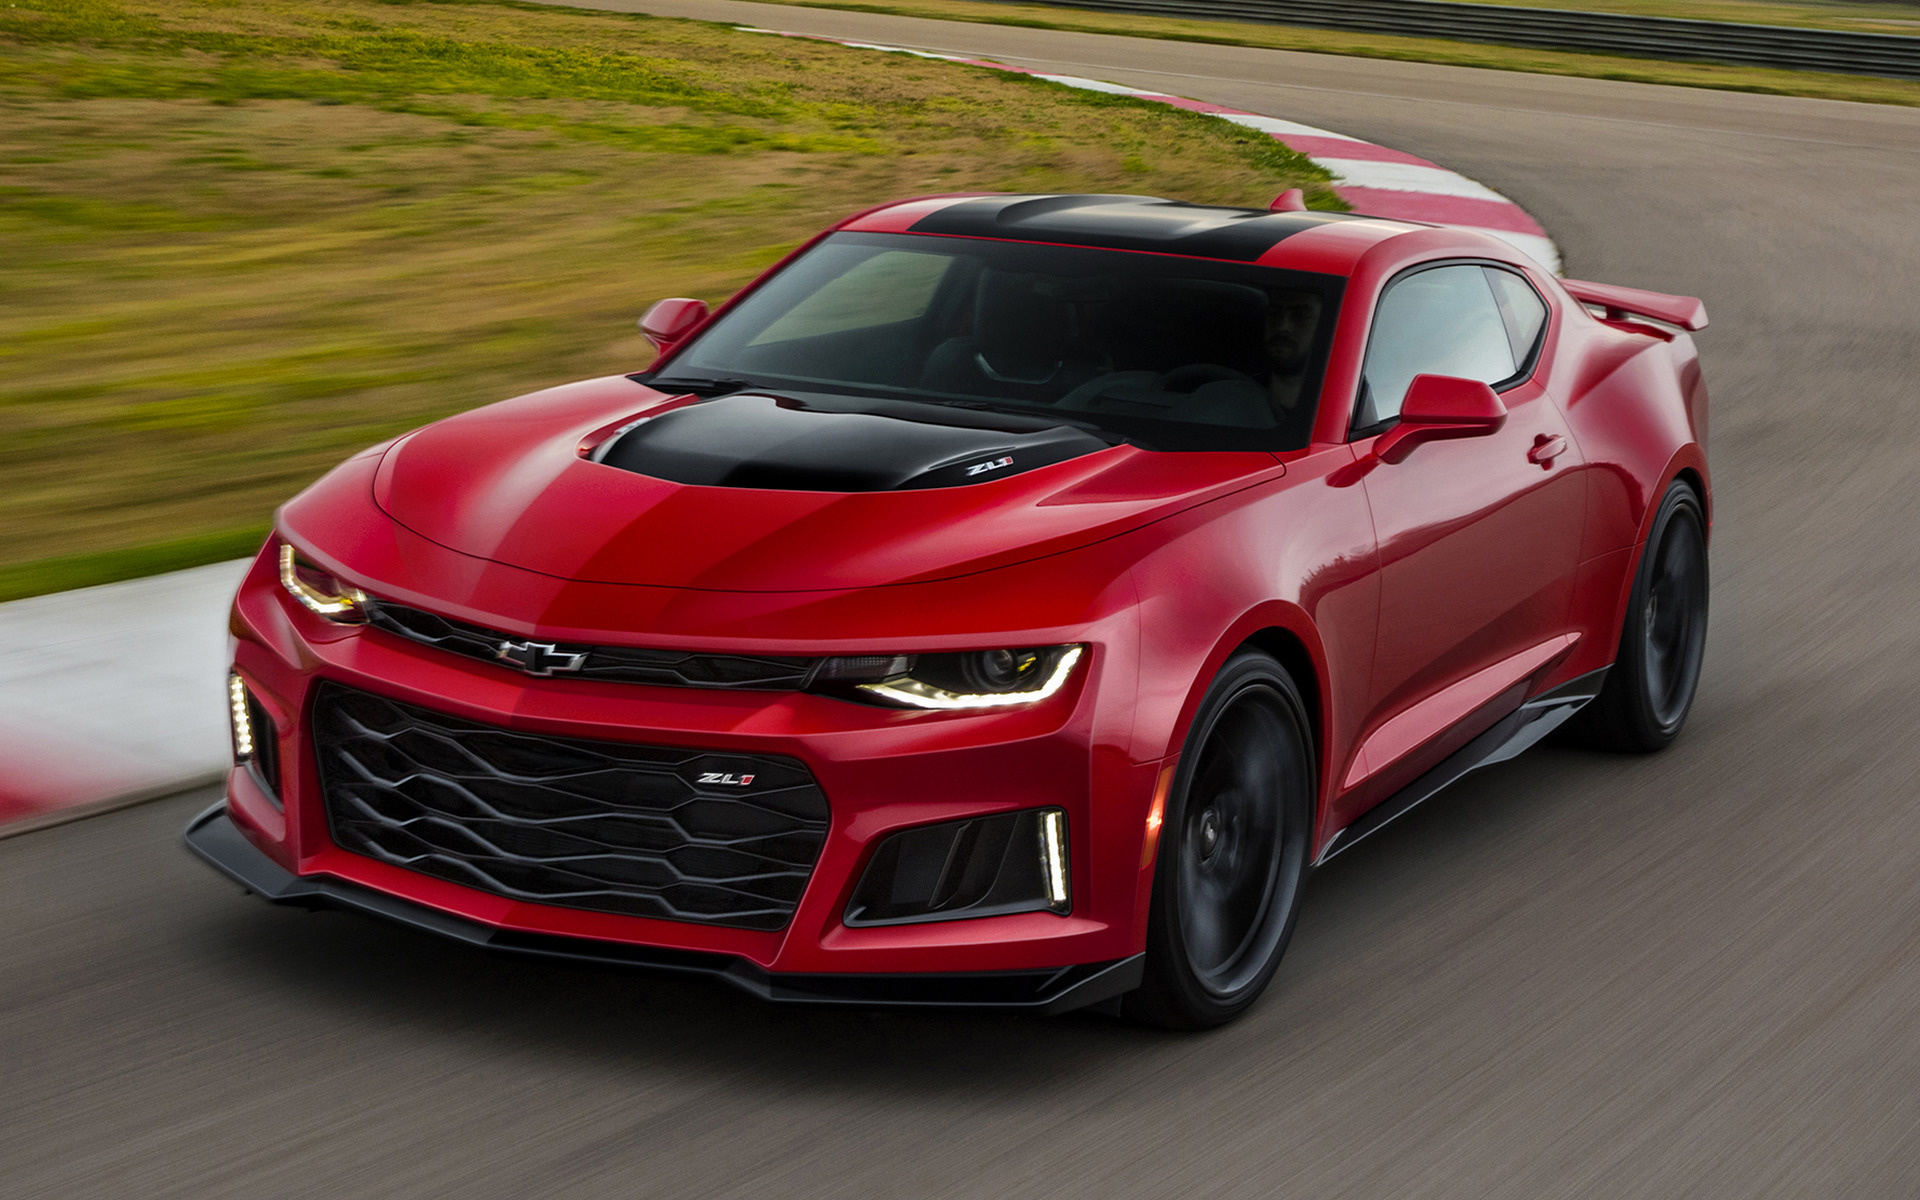 carpixel-net-2017-chevrolet-camaro-zl1-41119-wide